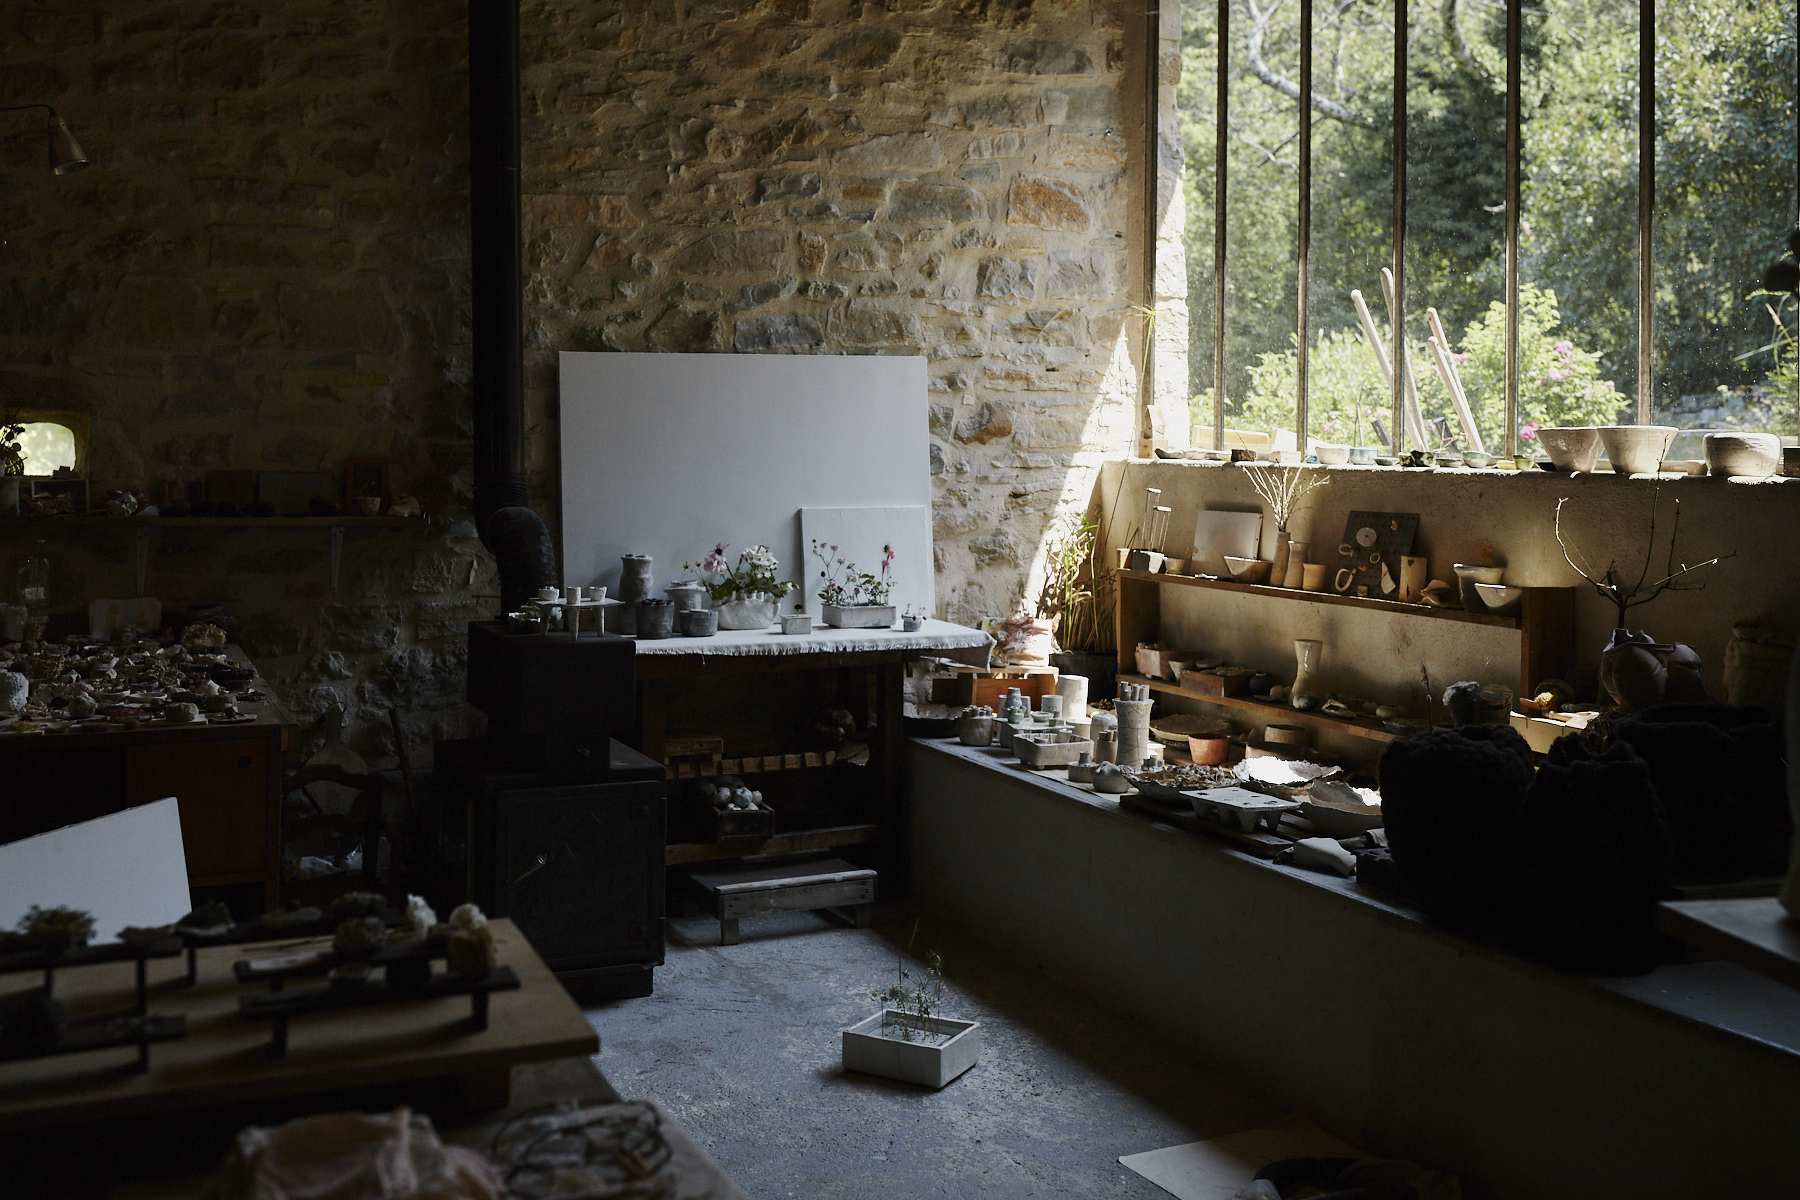 Morning light entering the atelier, which exhibits many of Cécile's works.